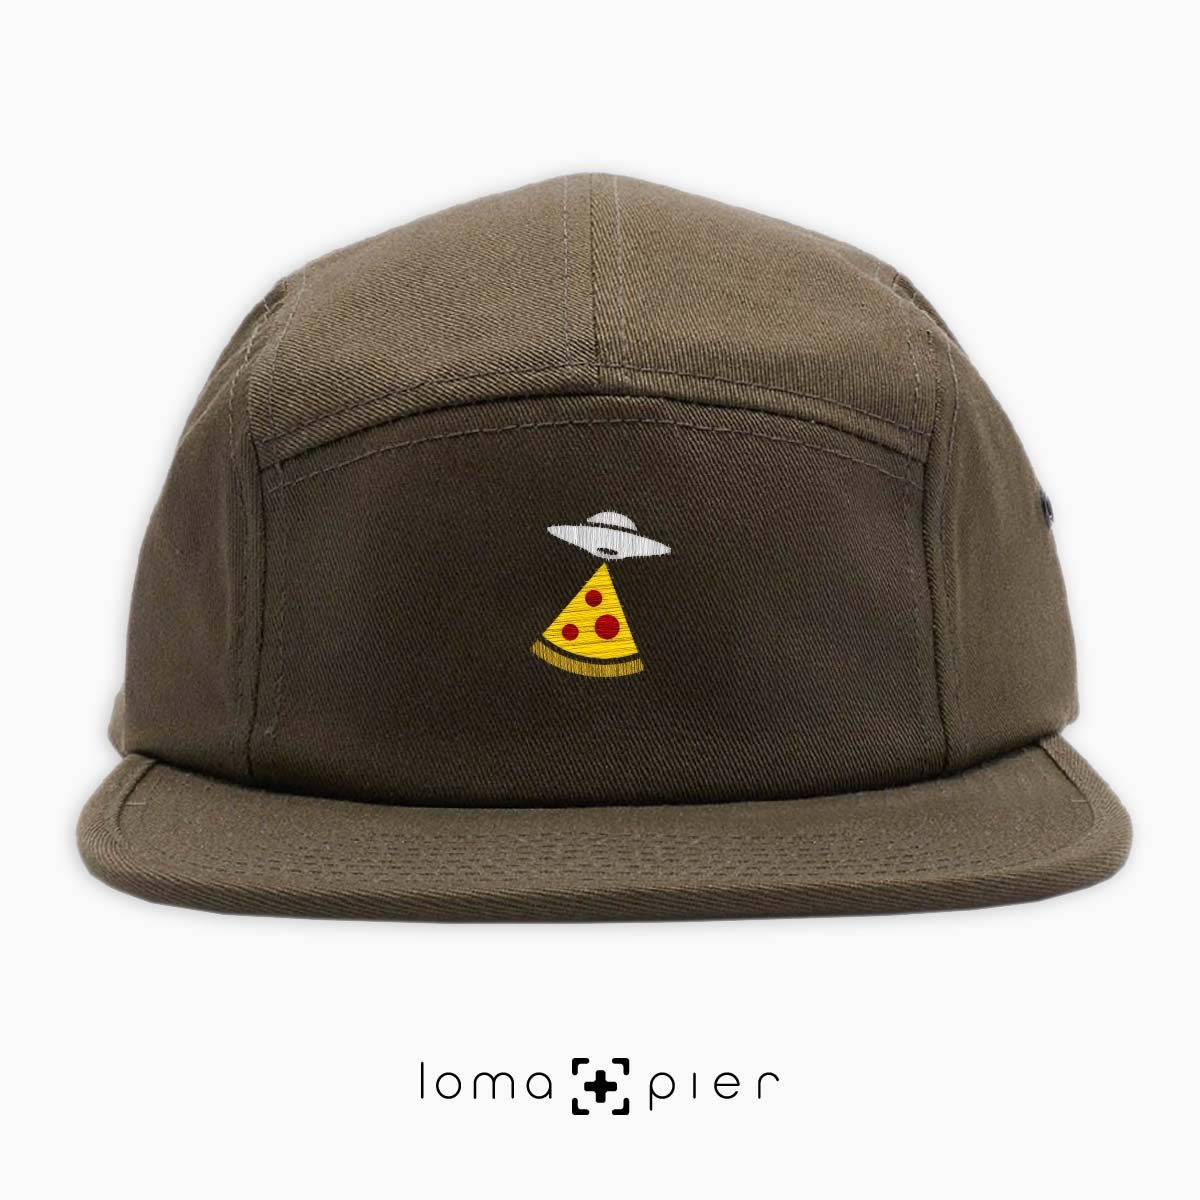 UFO PIZZA icon embroidered on an olive green cotton 5-panel hat with multicolor thread by loma+pier hat store